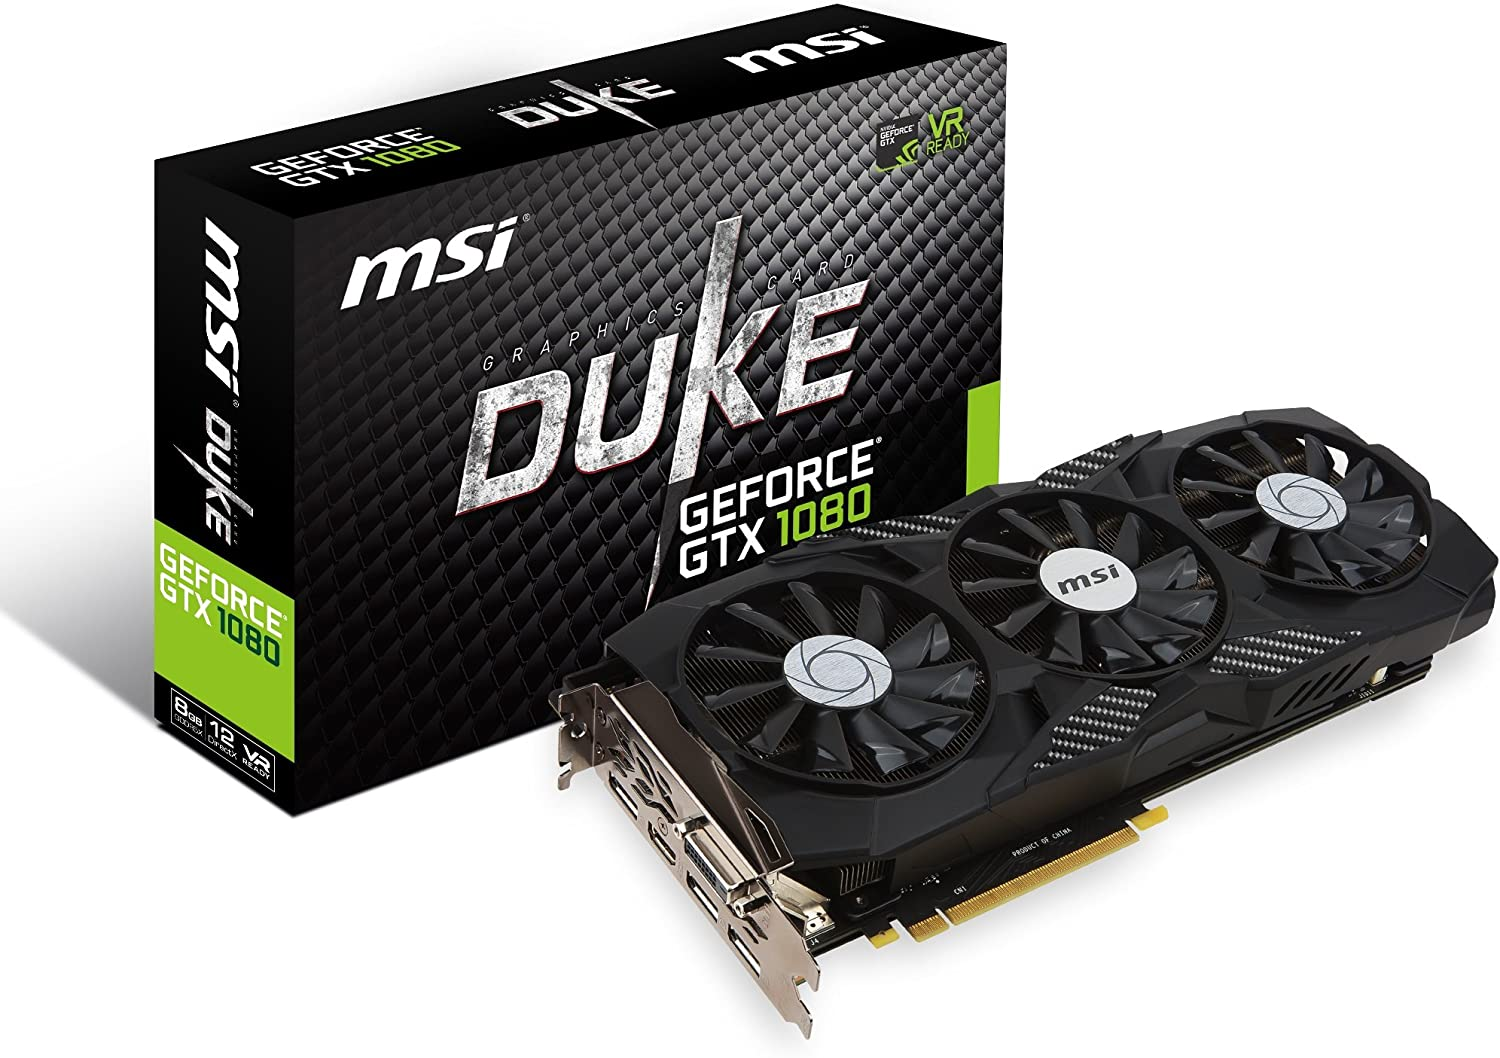 MSI Gaming GeForce GTX 1080 8GB GDDR5X SLI DirectX 12 VR Ready Graphics Card (GTX 1080 DUKE 8G OC)